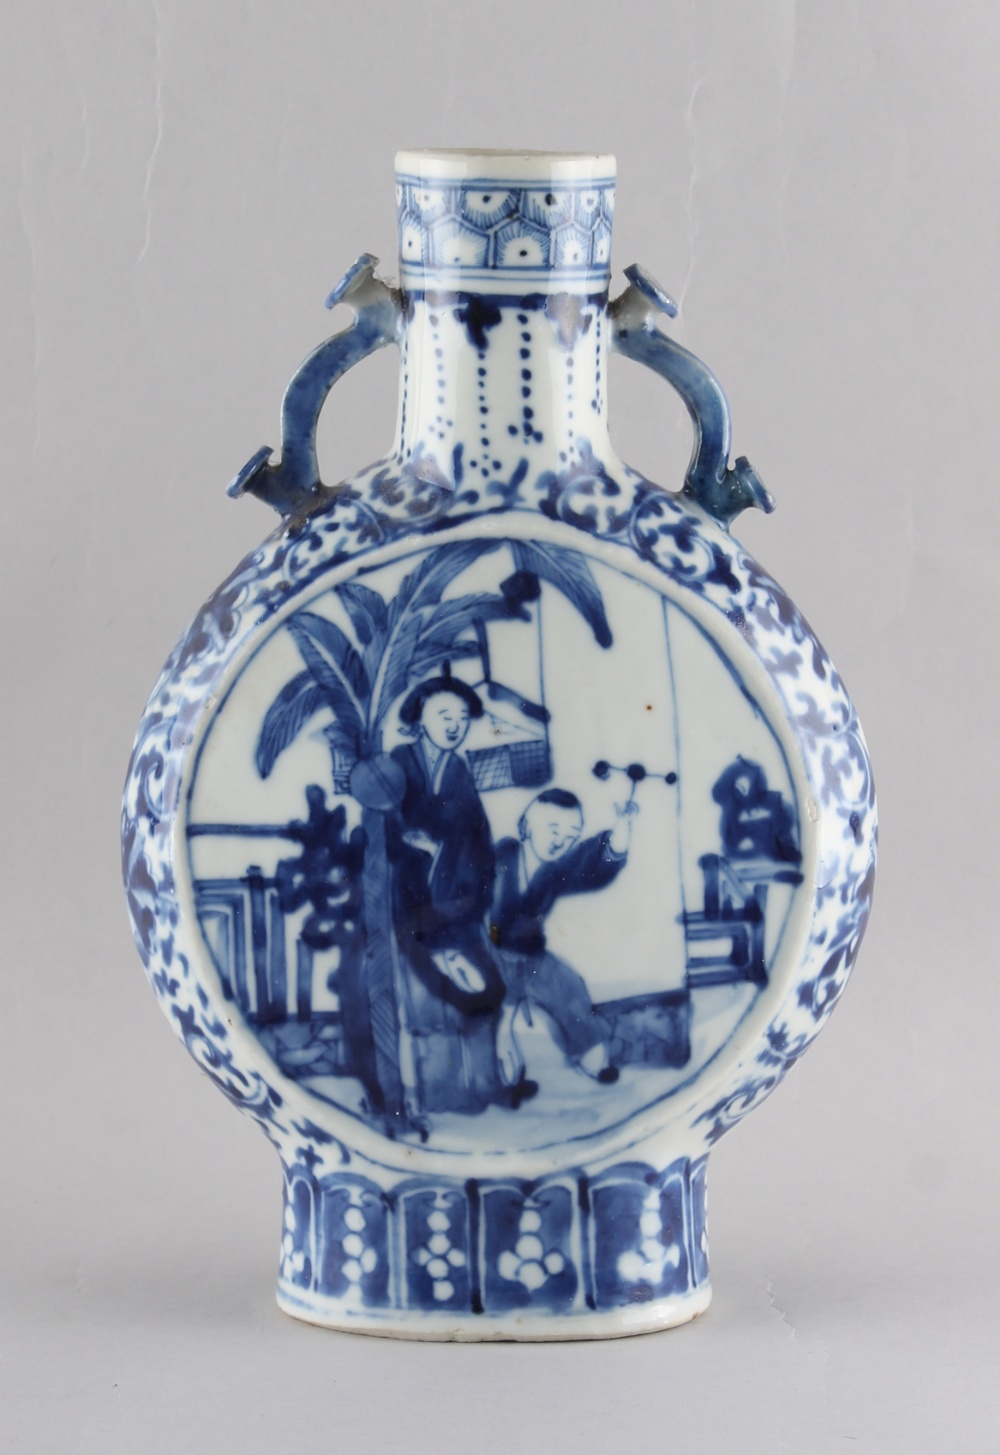 A 19th century Chinese blue & white moon flask, apocryphal Kangxi 4-character mark, 9.85ins. (